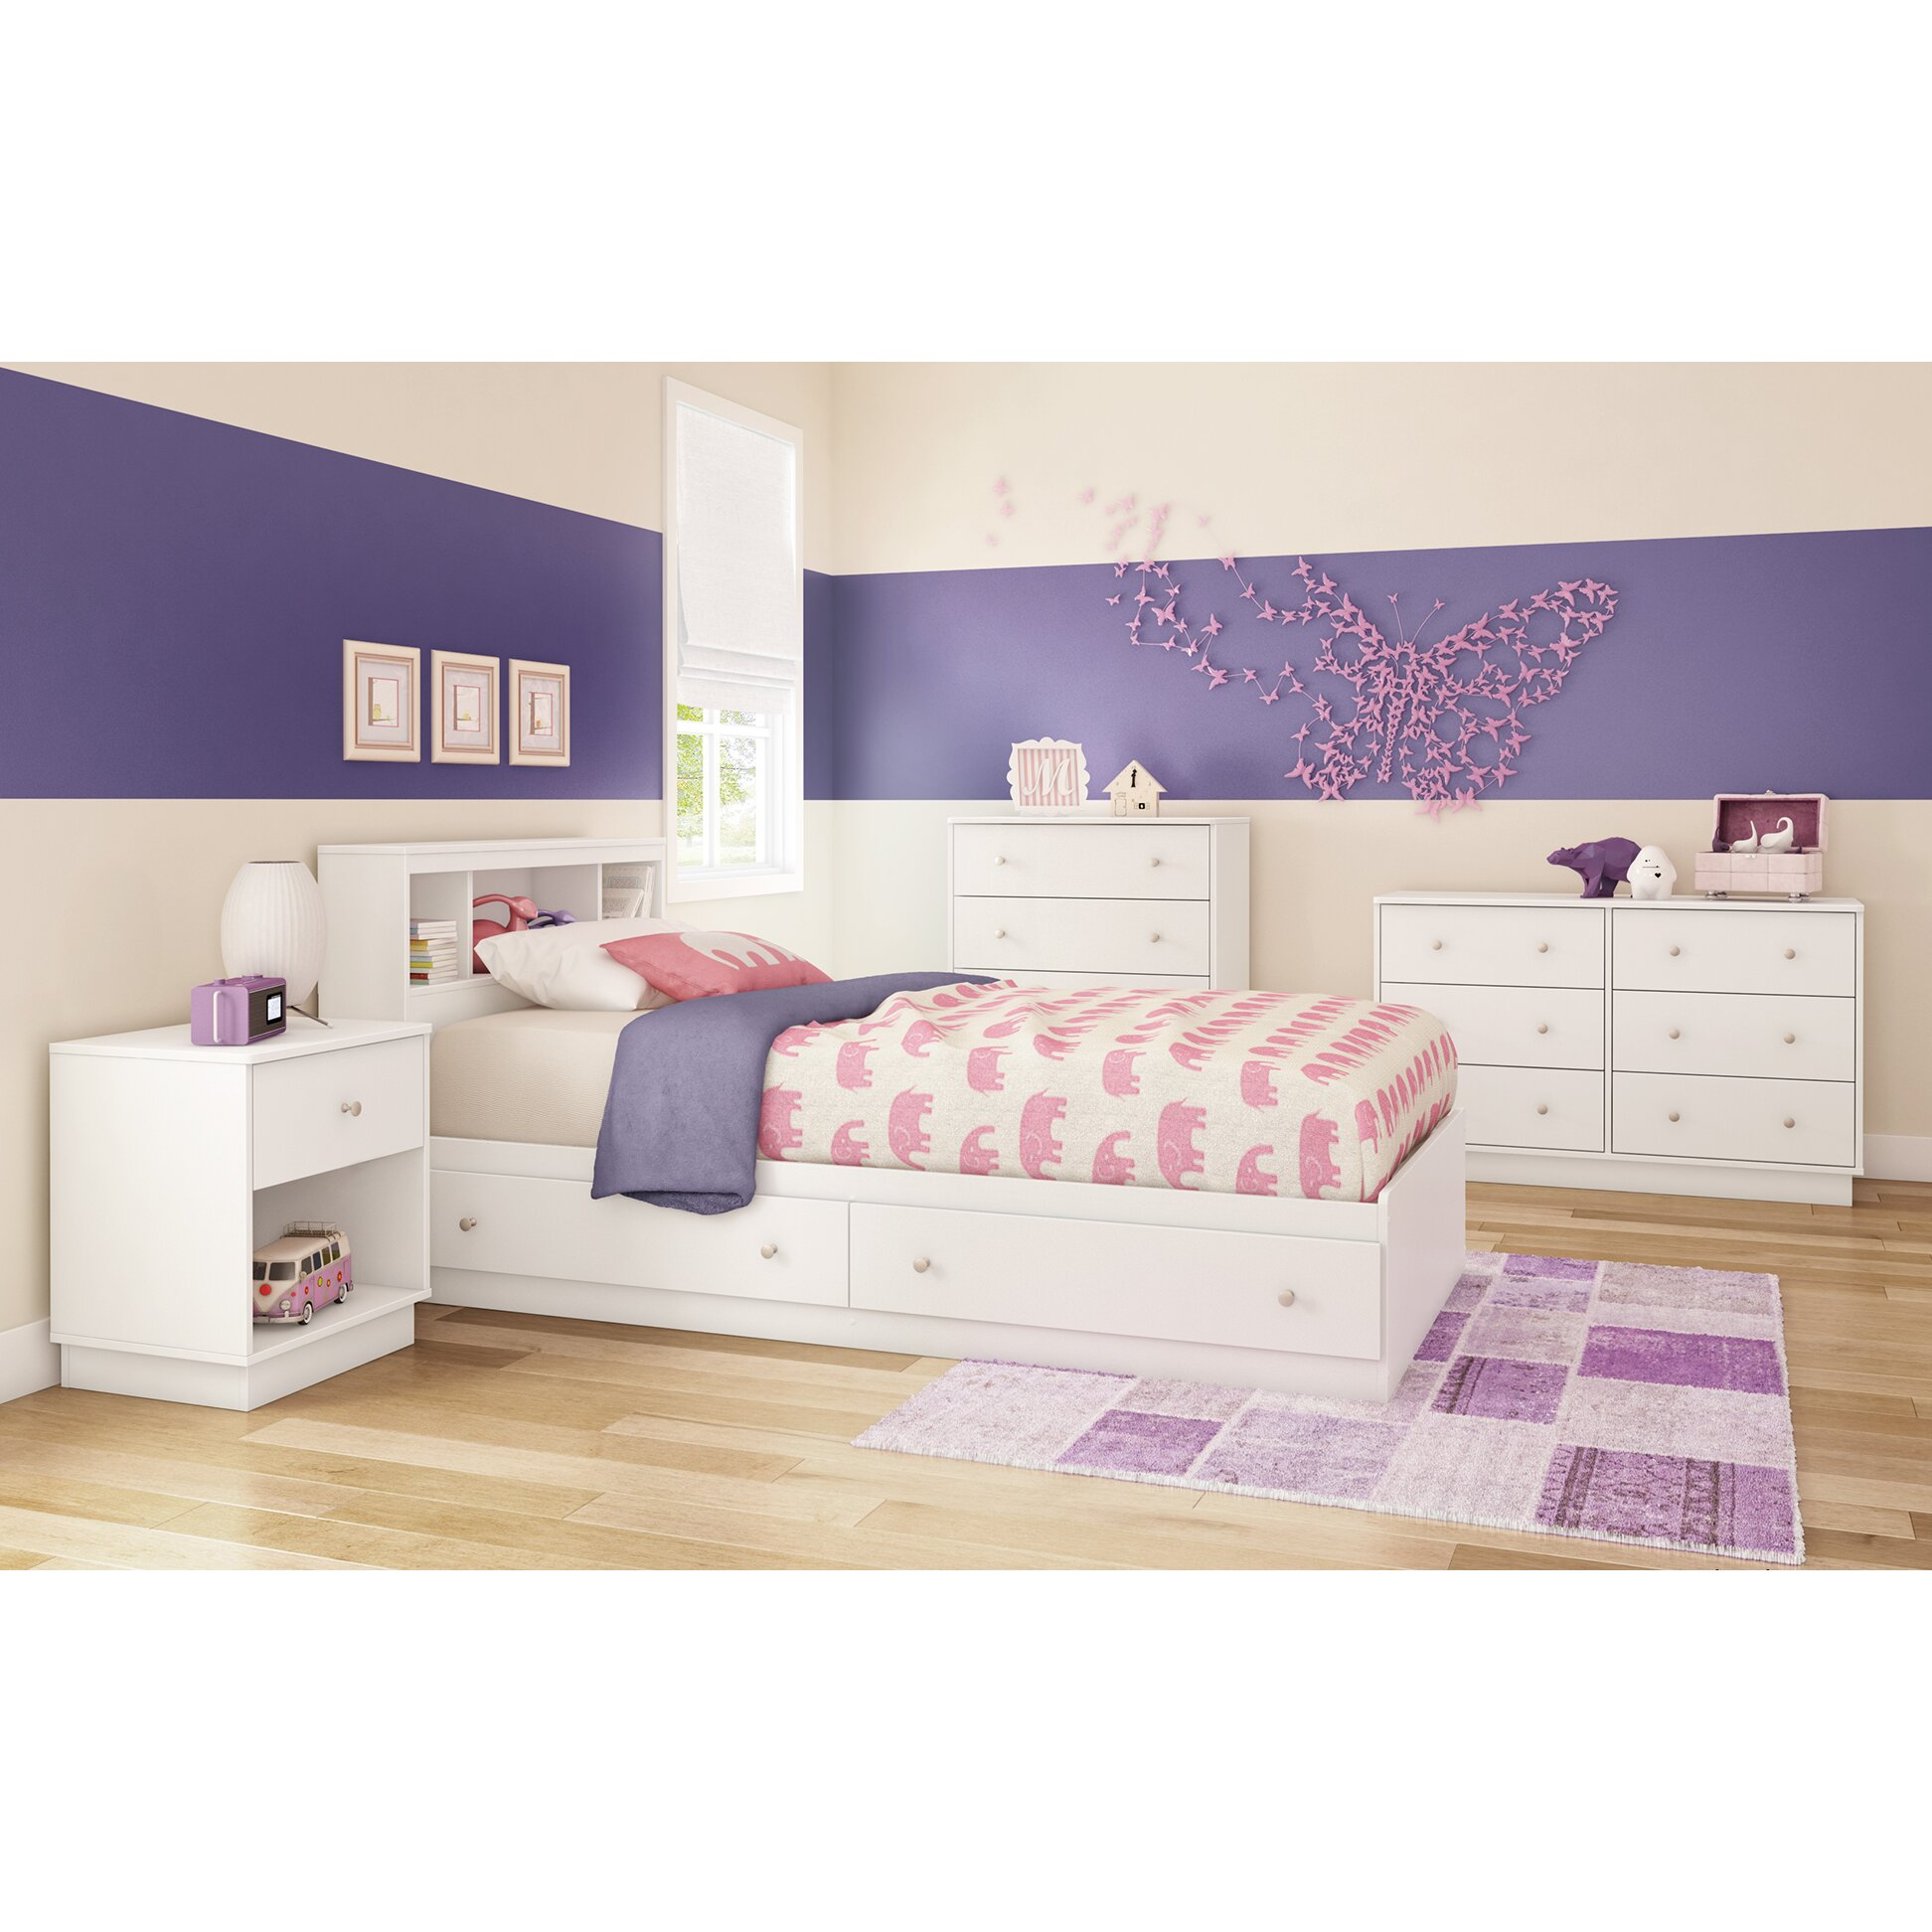 South shore litchi twin mate 39 s bed with storage reviews - Childrens bedroom furniture with storage ...